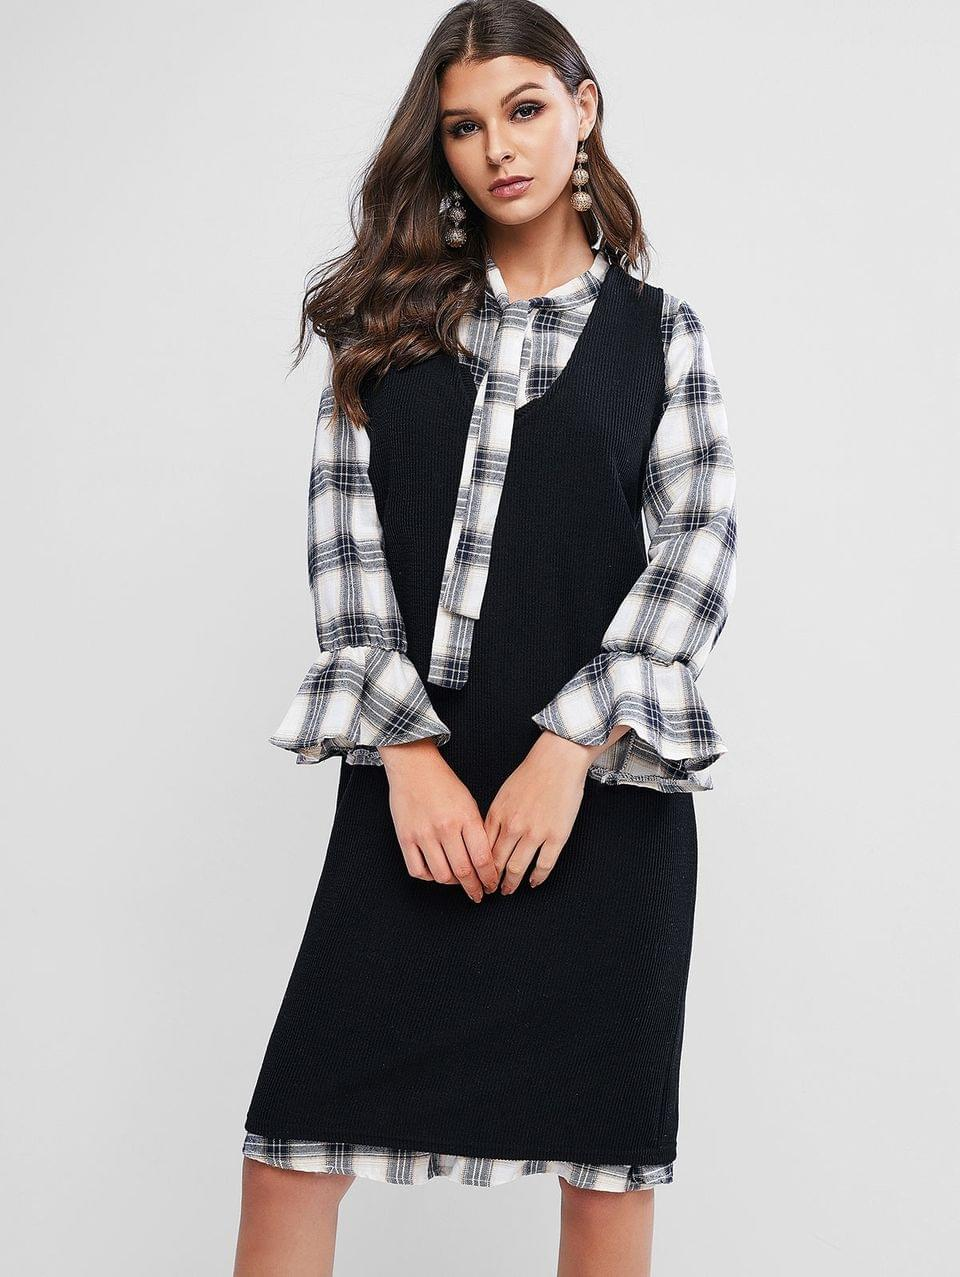 Women's Plaid Poet Sleeves Bowtie Two Piece Dress Set - Black L